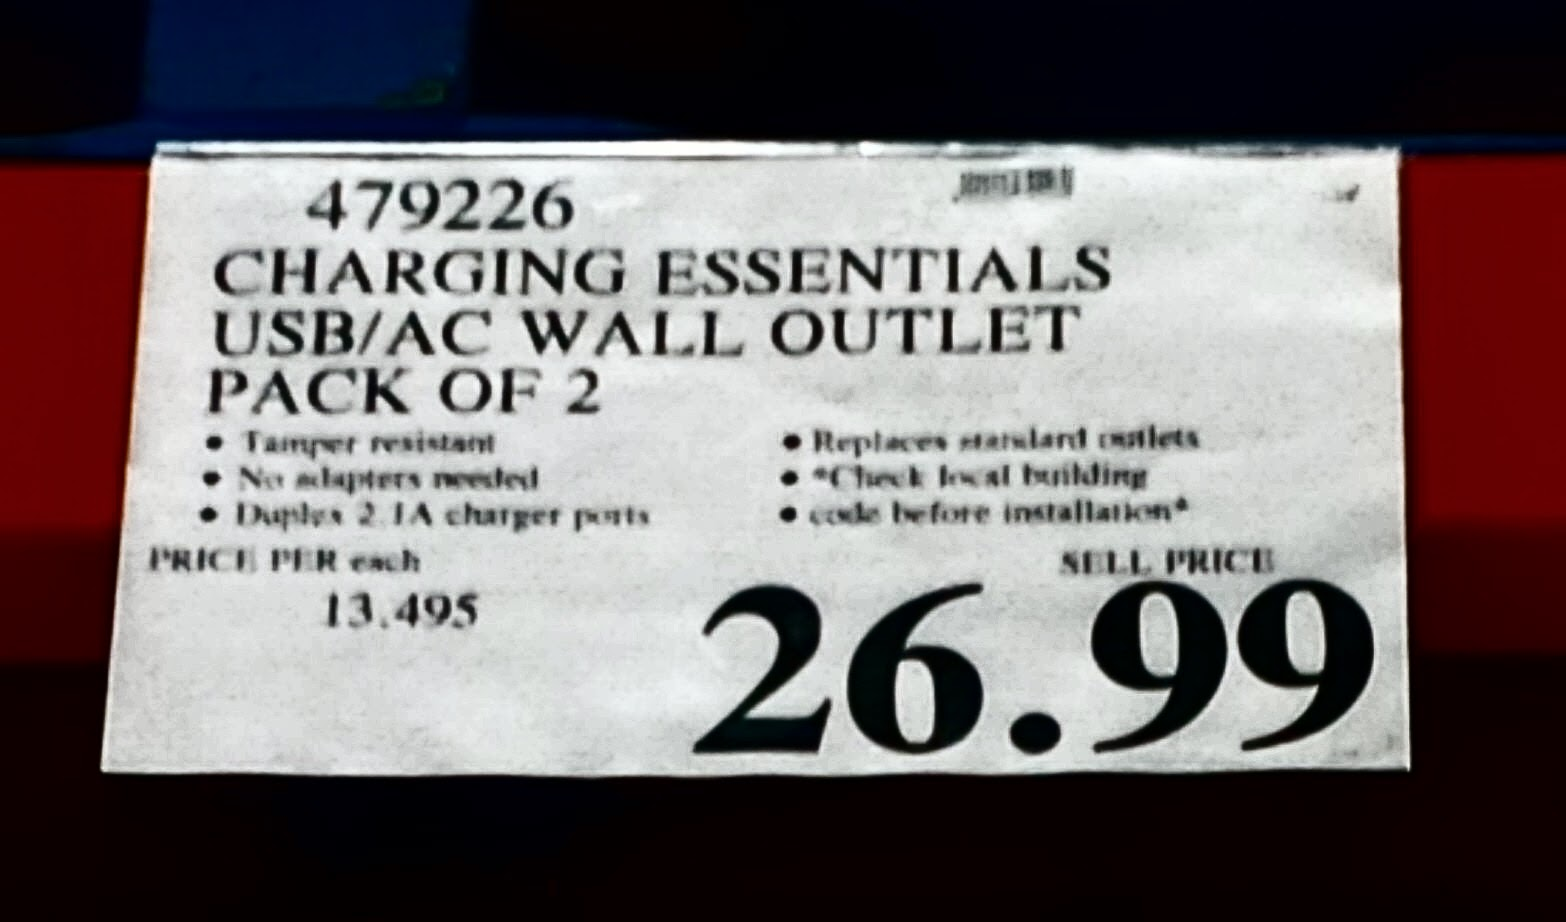 Canadian Costco Consumer New Featured Item Usb Ac Wall Outlet Electrical Wiring Canada Welcome And Thank You For Visiting The Place To Keep Up Date With Sales Clearance Items